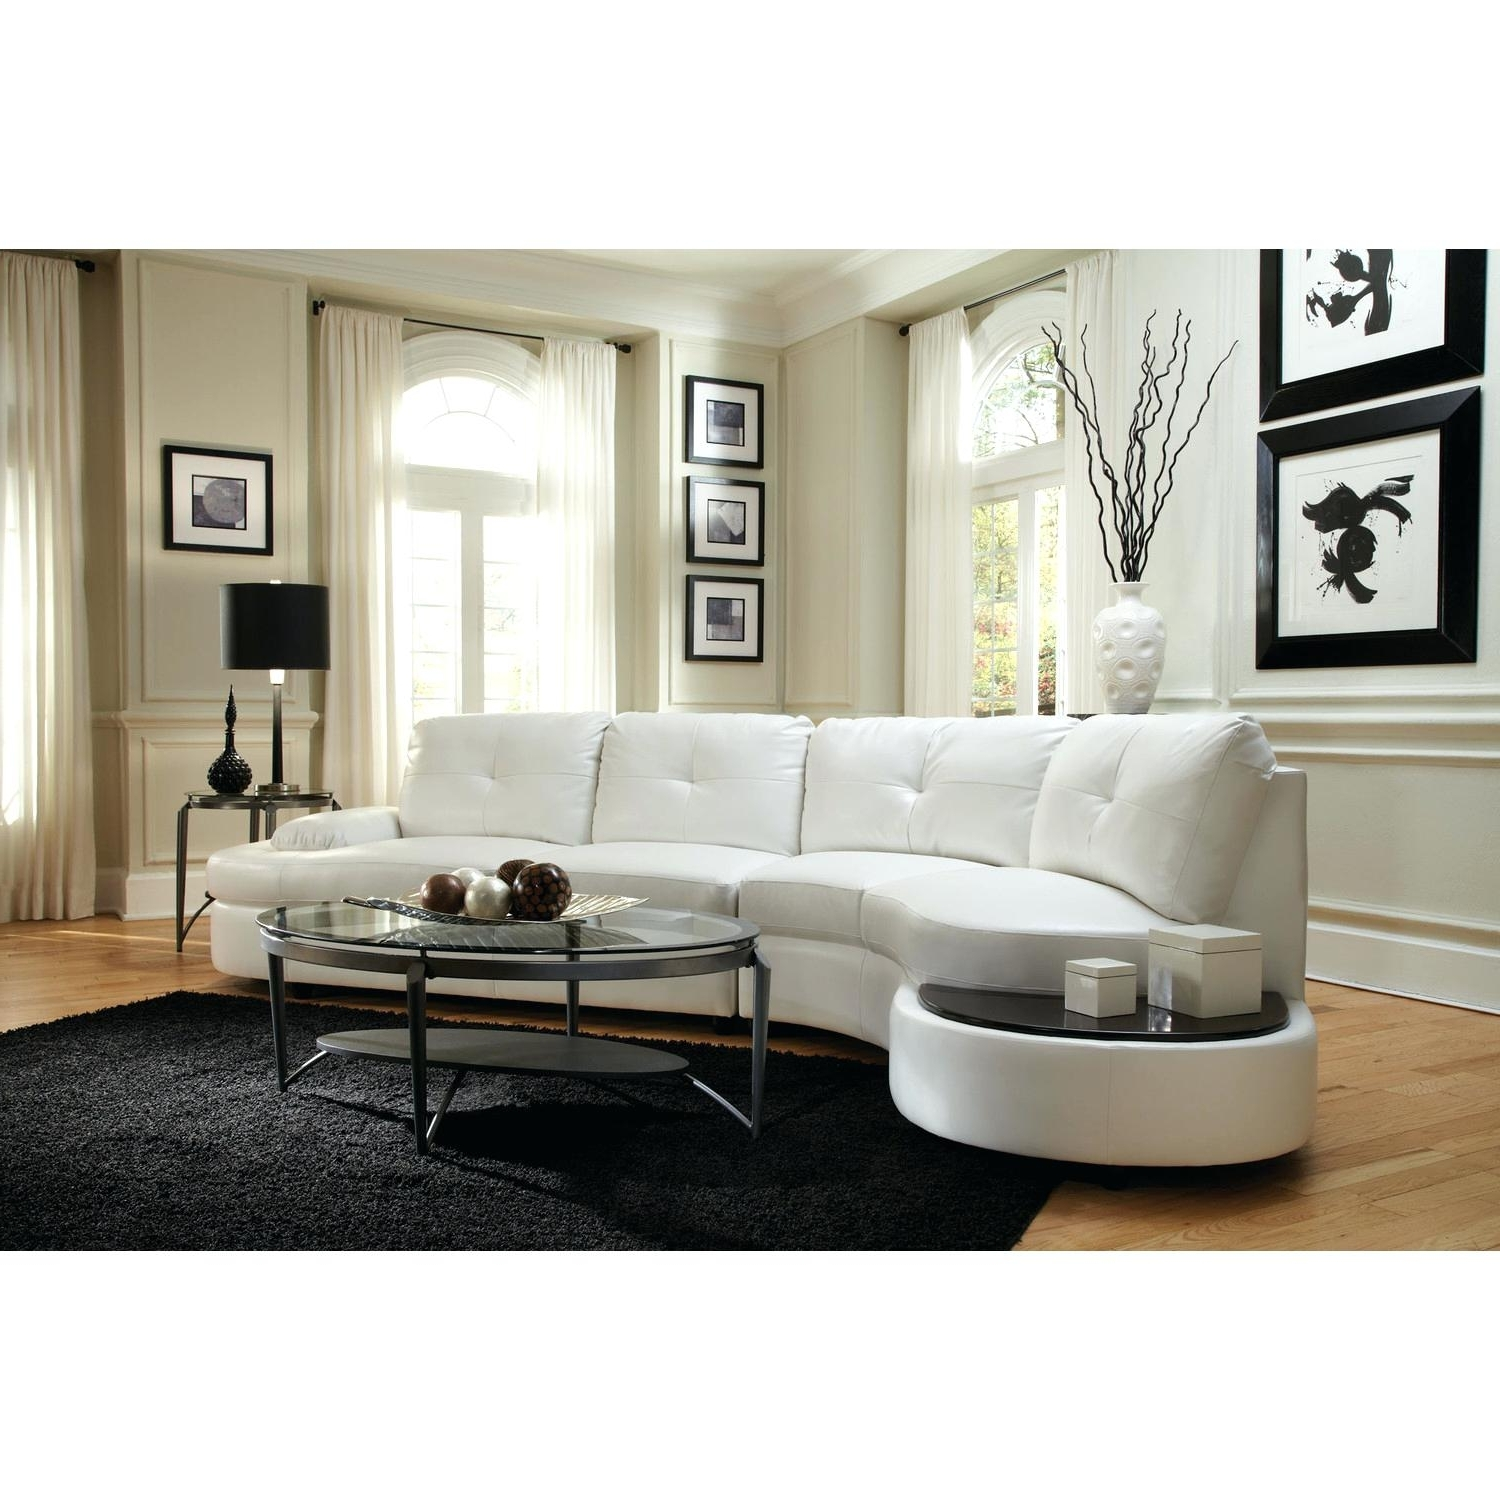 Ontario Canada Sectional Sofas Throughout Popular Best Of Sectional Sofas With Cup Holders (34 Photos) (View 12 of 15)